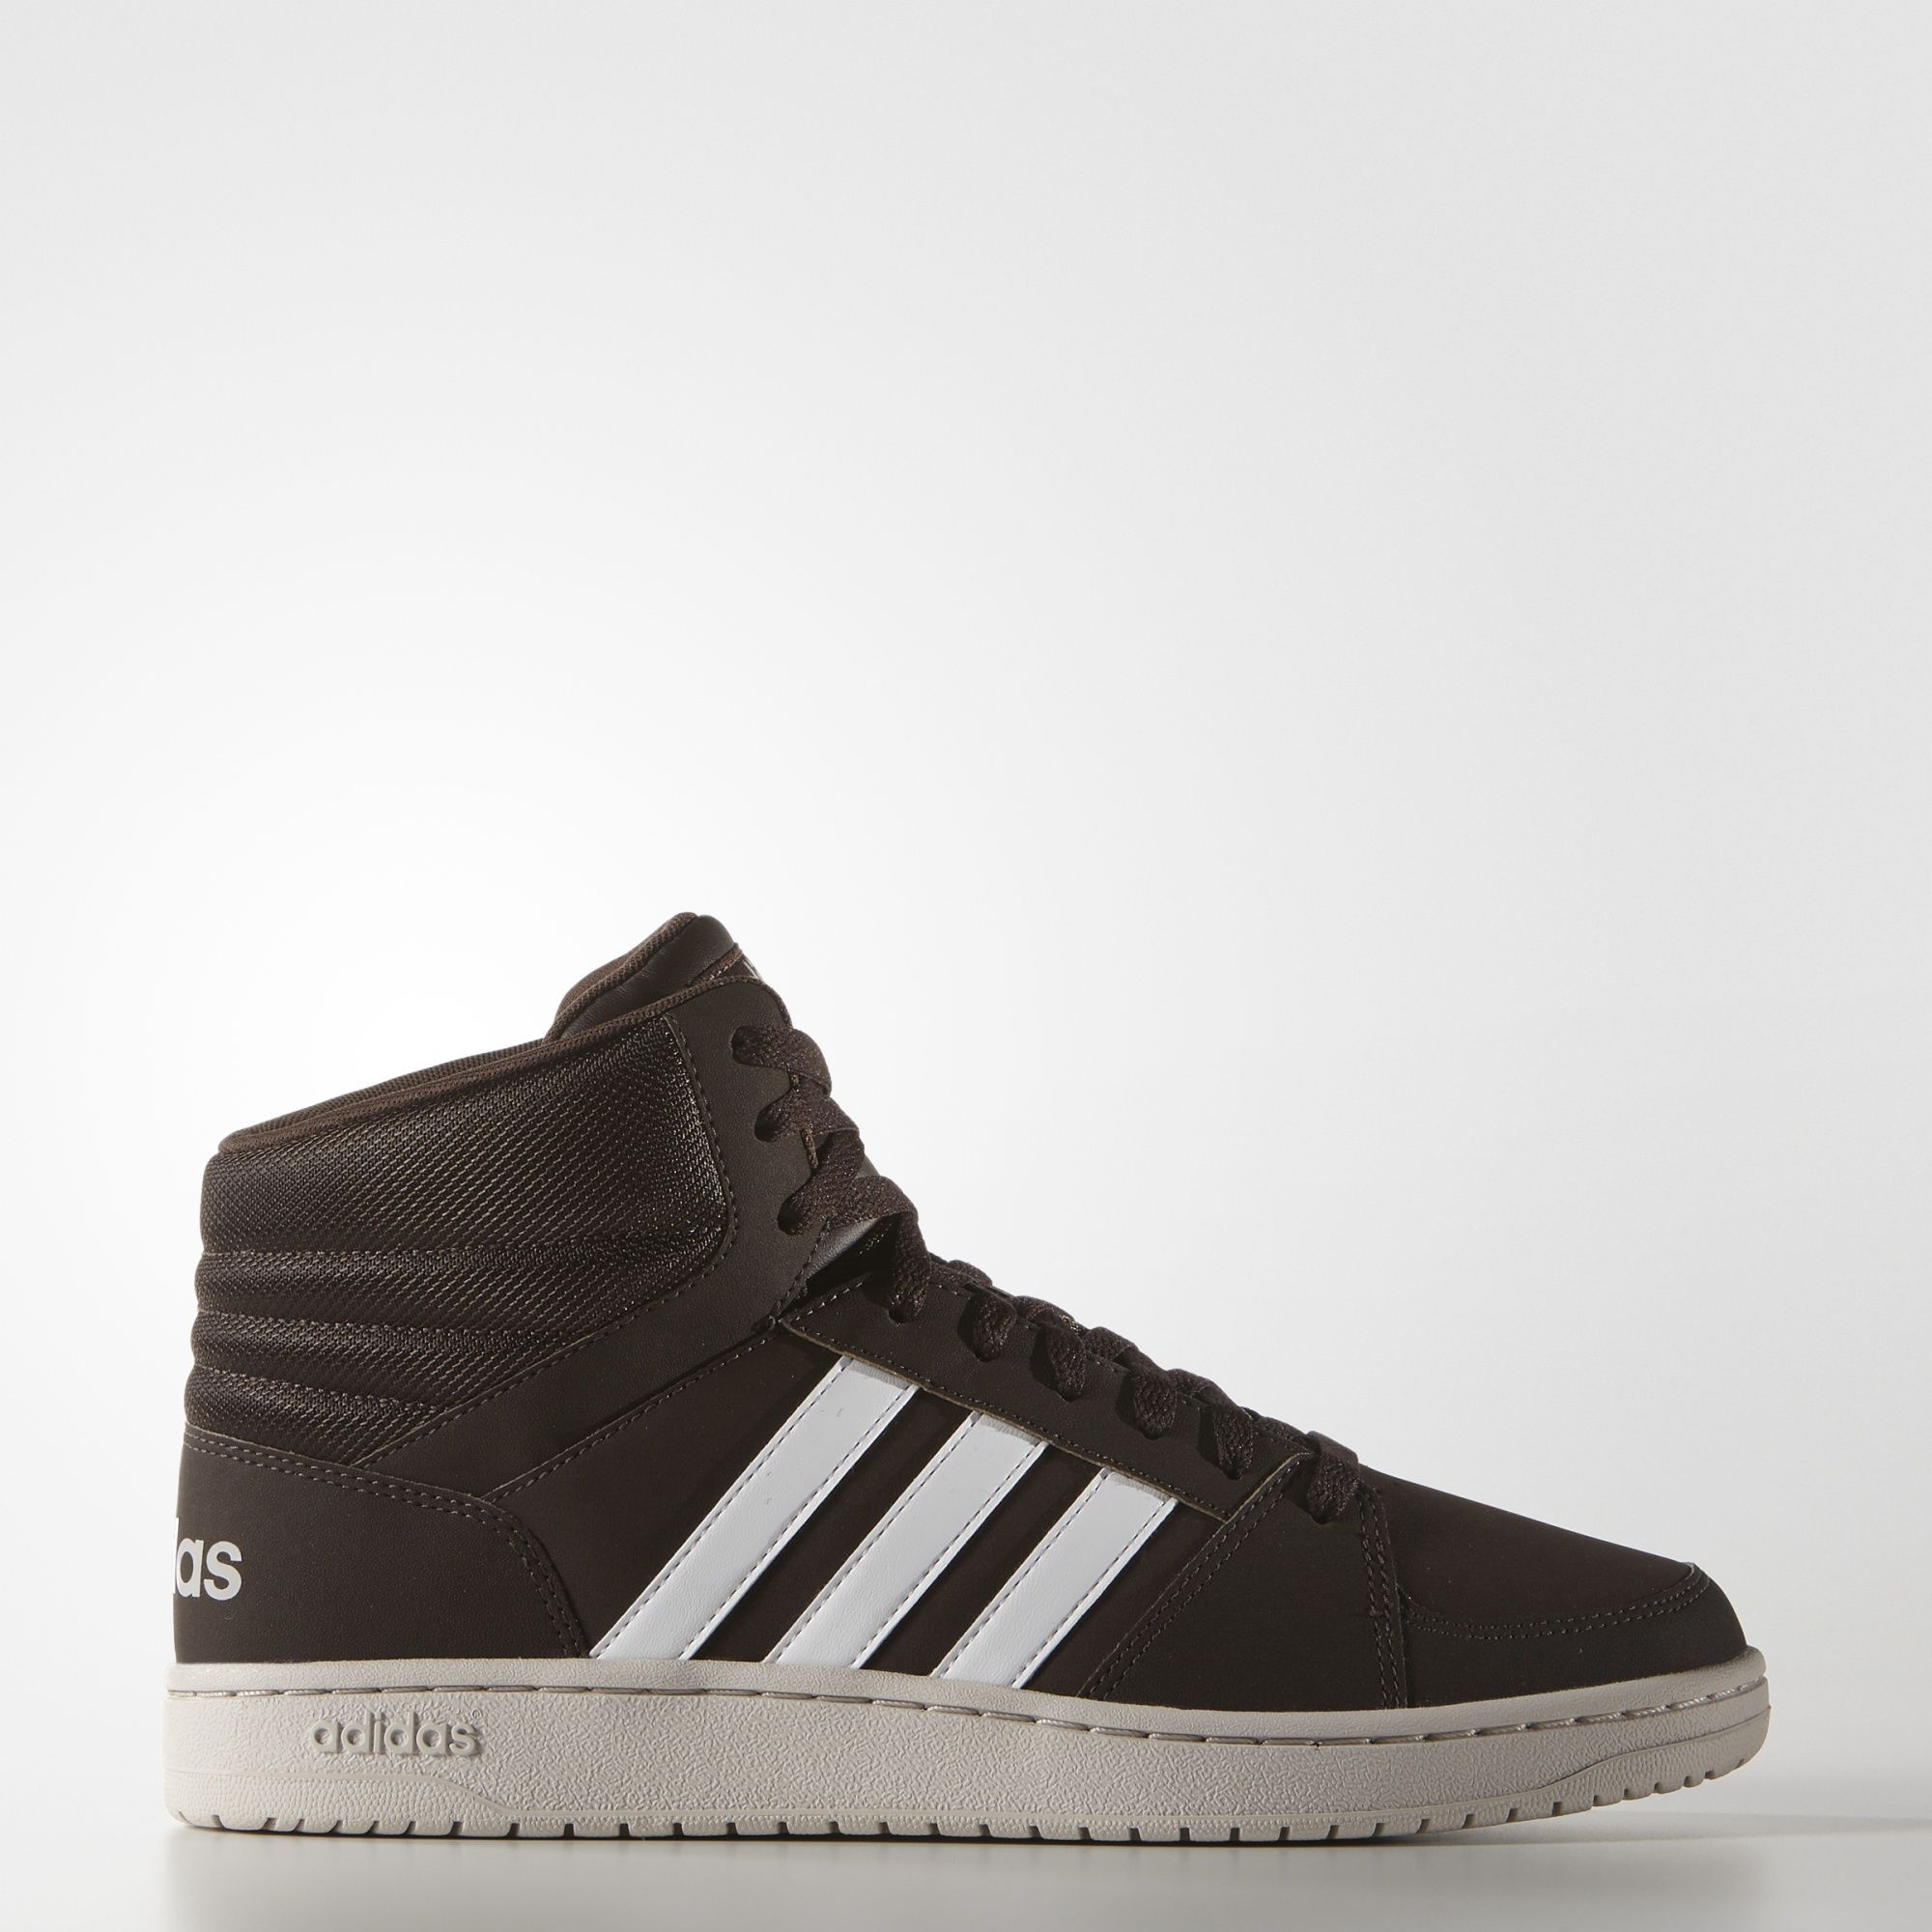 adidas - Hoops VS Mid Shoes